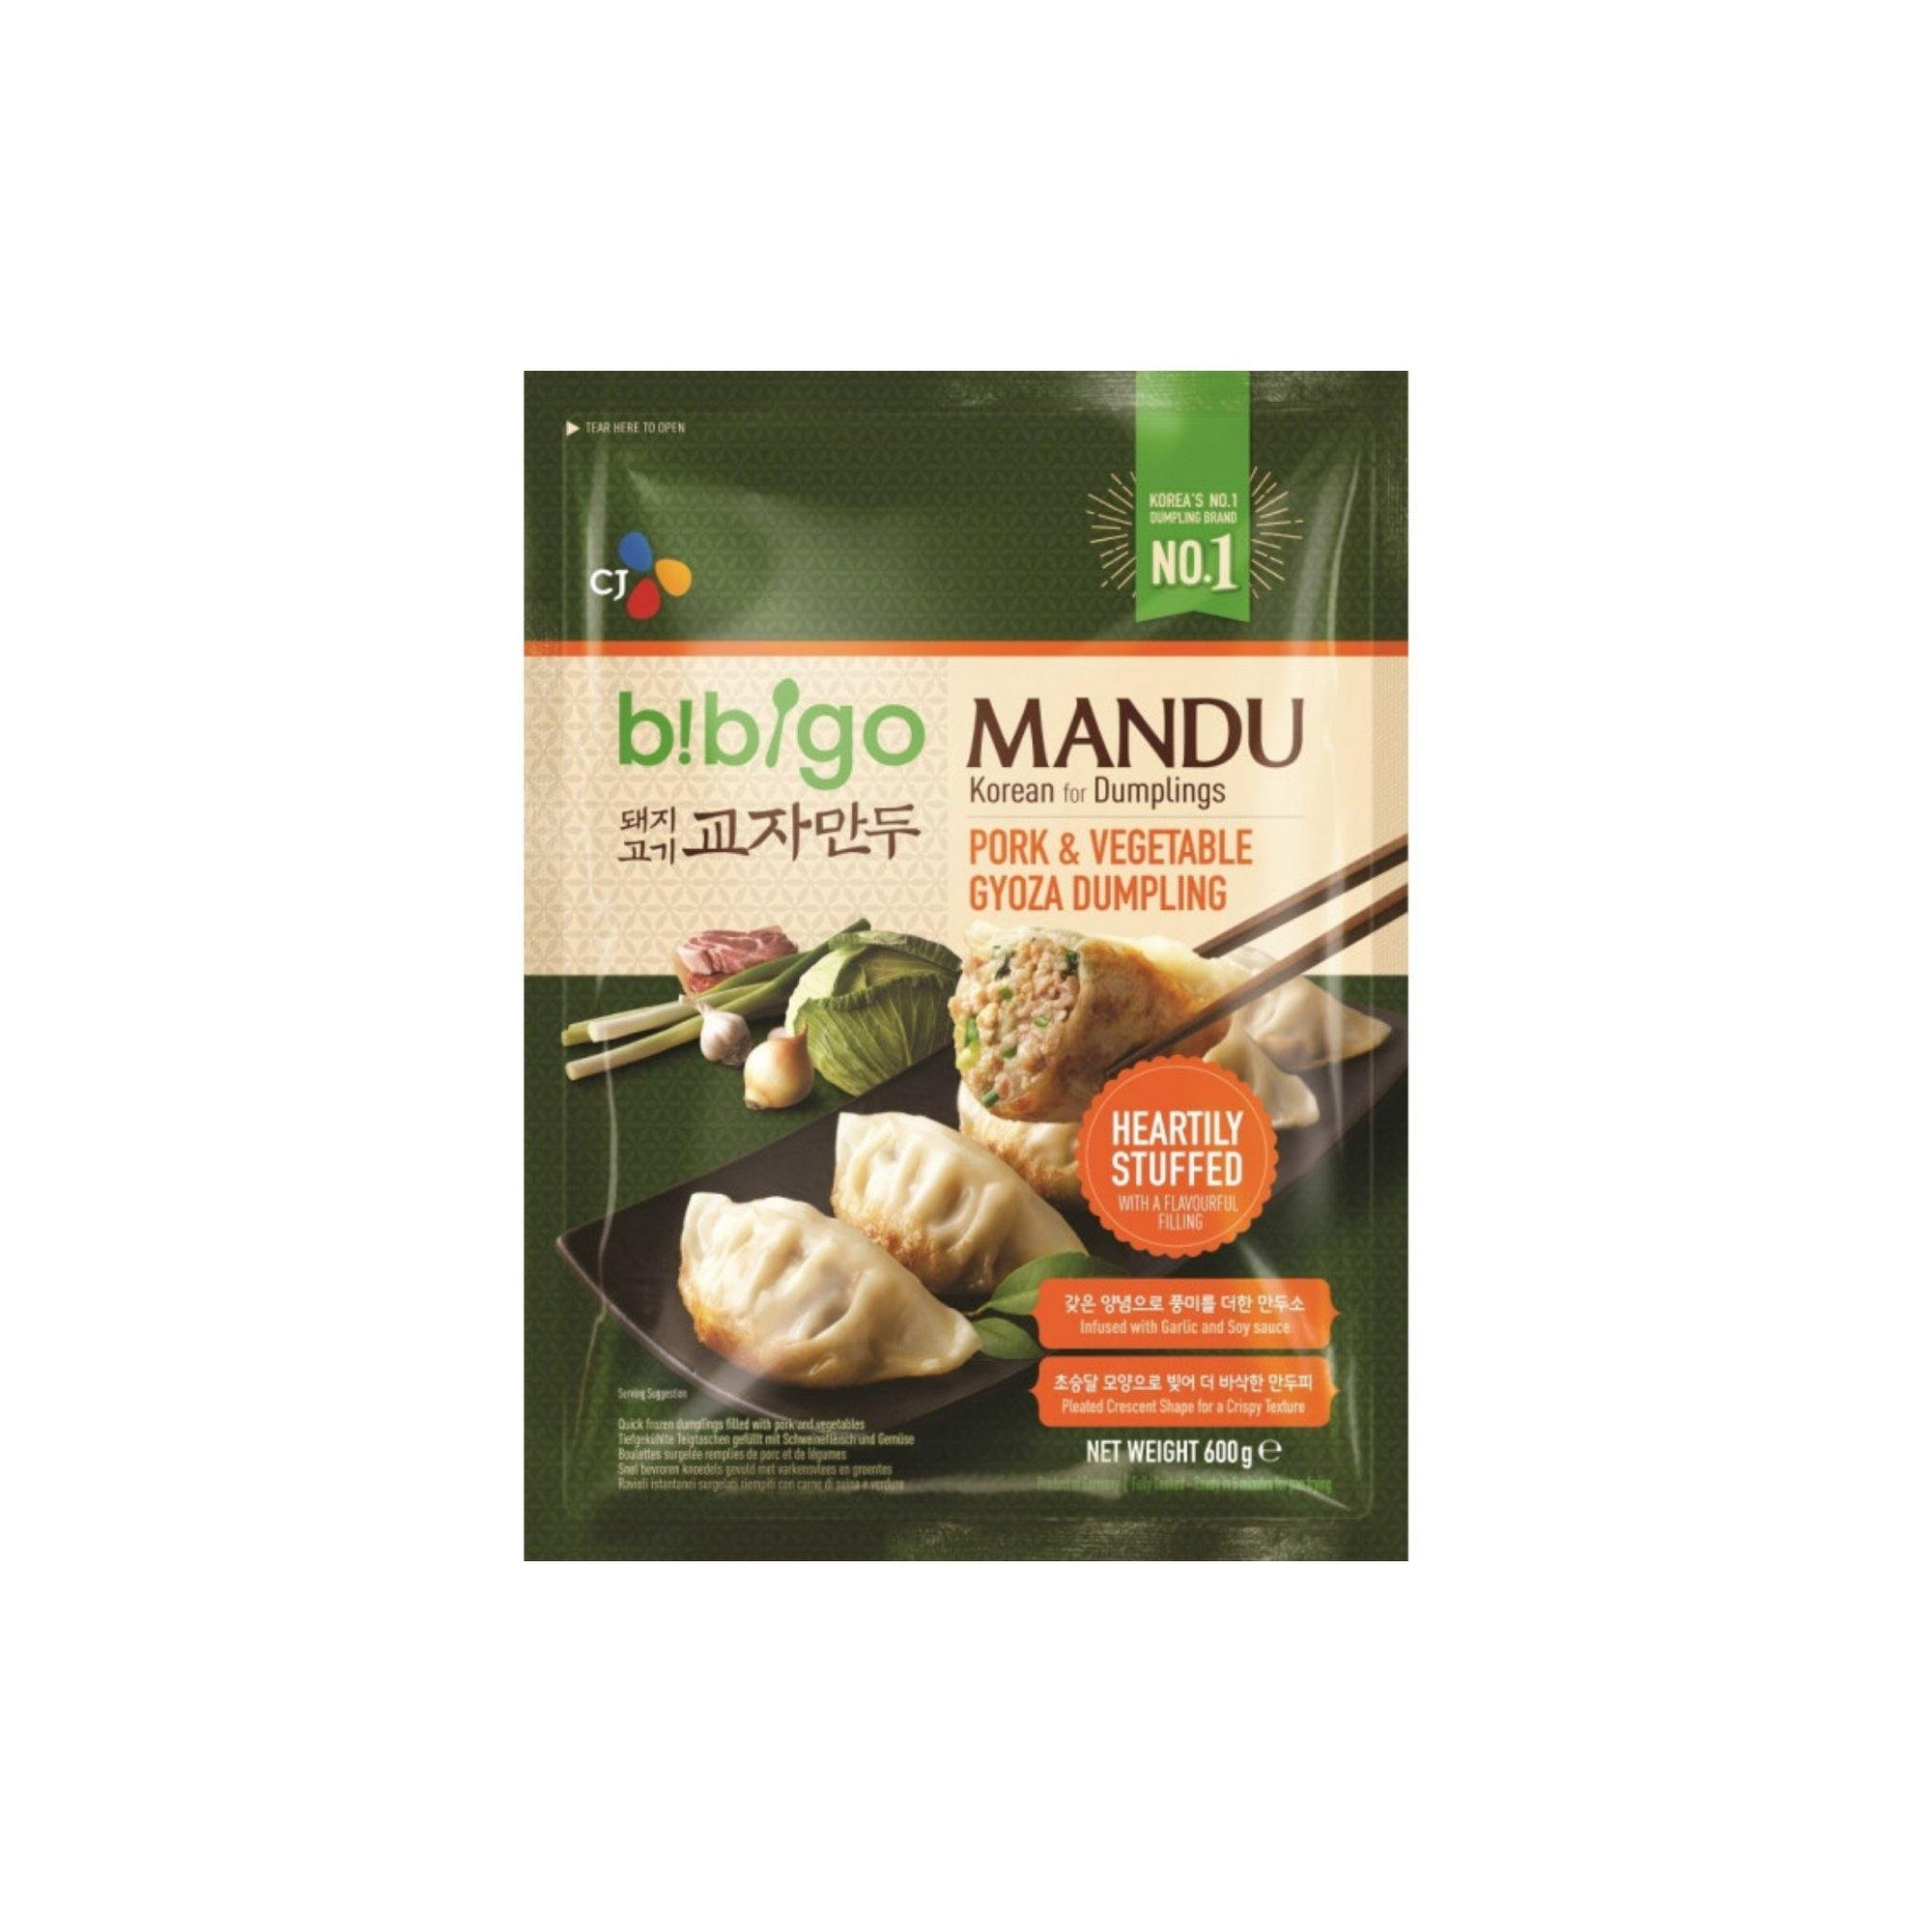 Bibigo Pork and Veg Gyoza Dumpling 600G - Asian Harvest